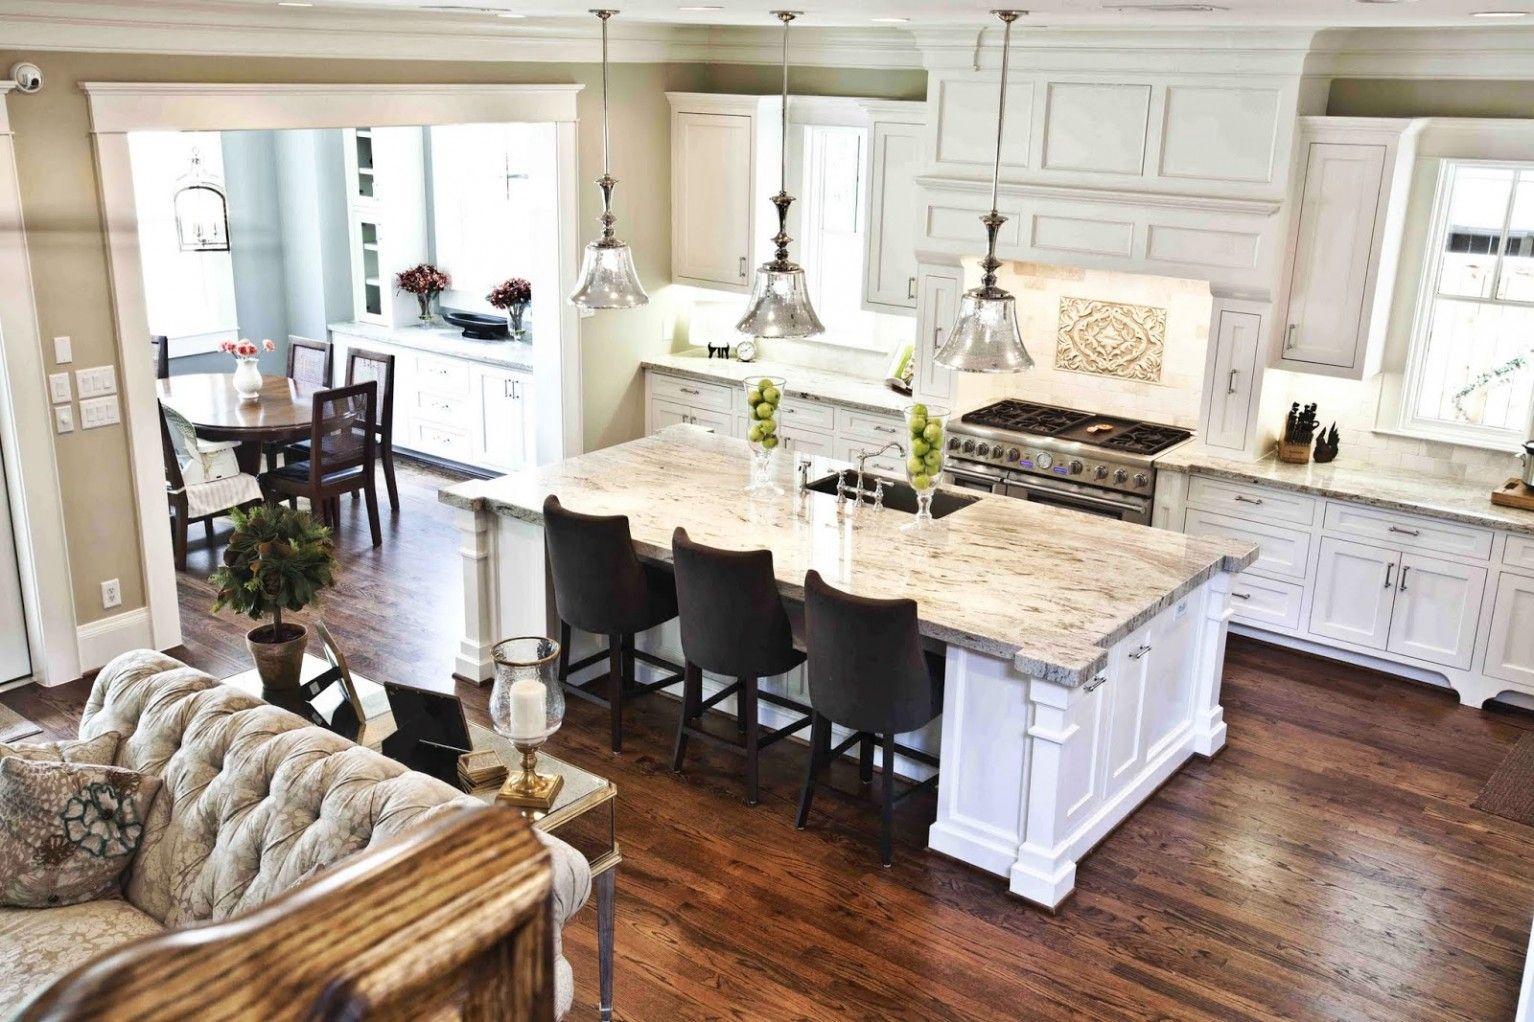 5 Open Floor Plans For Your Living Area Open Concept Living Spaces Are Popular For Home Design Trends And For Many Kitchen Living Home Kitchens Kitchen Layout